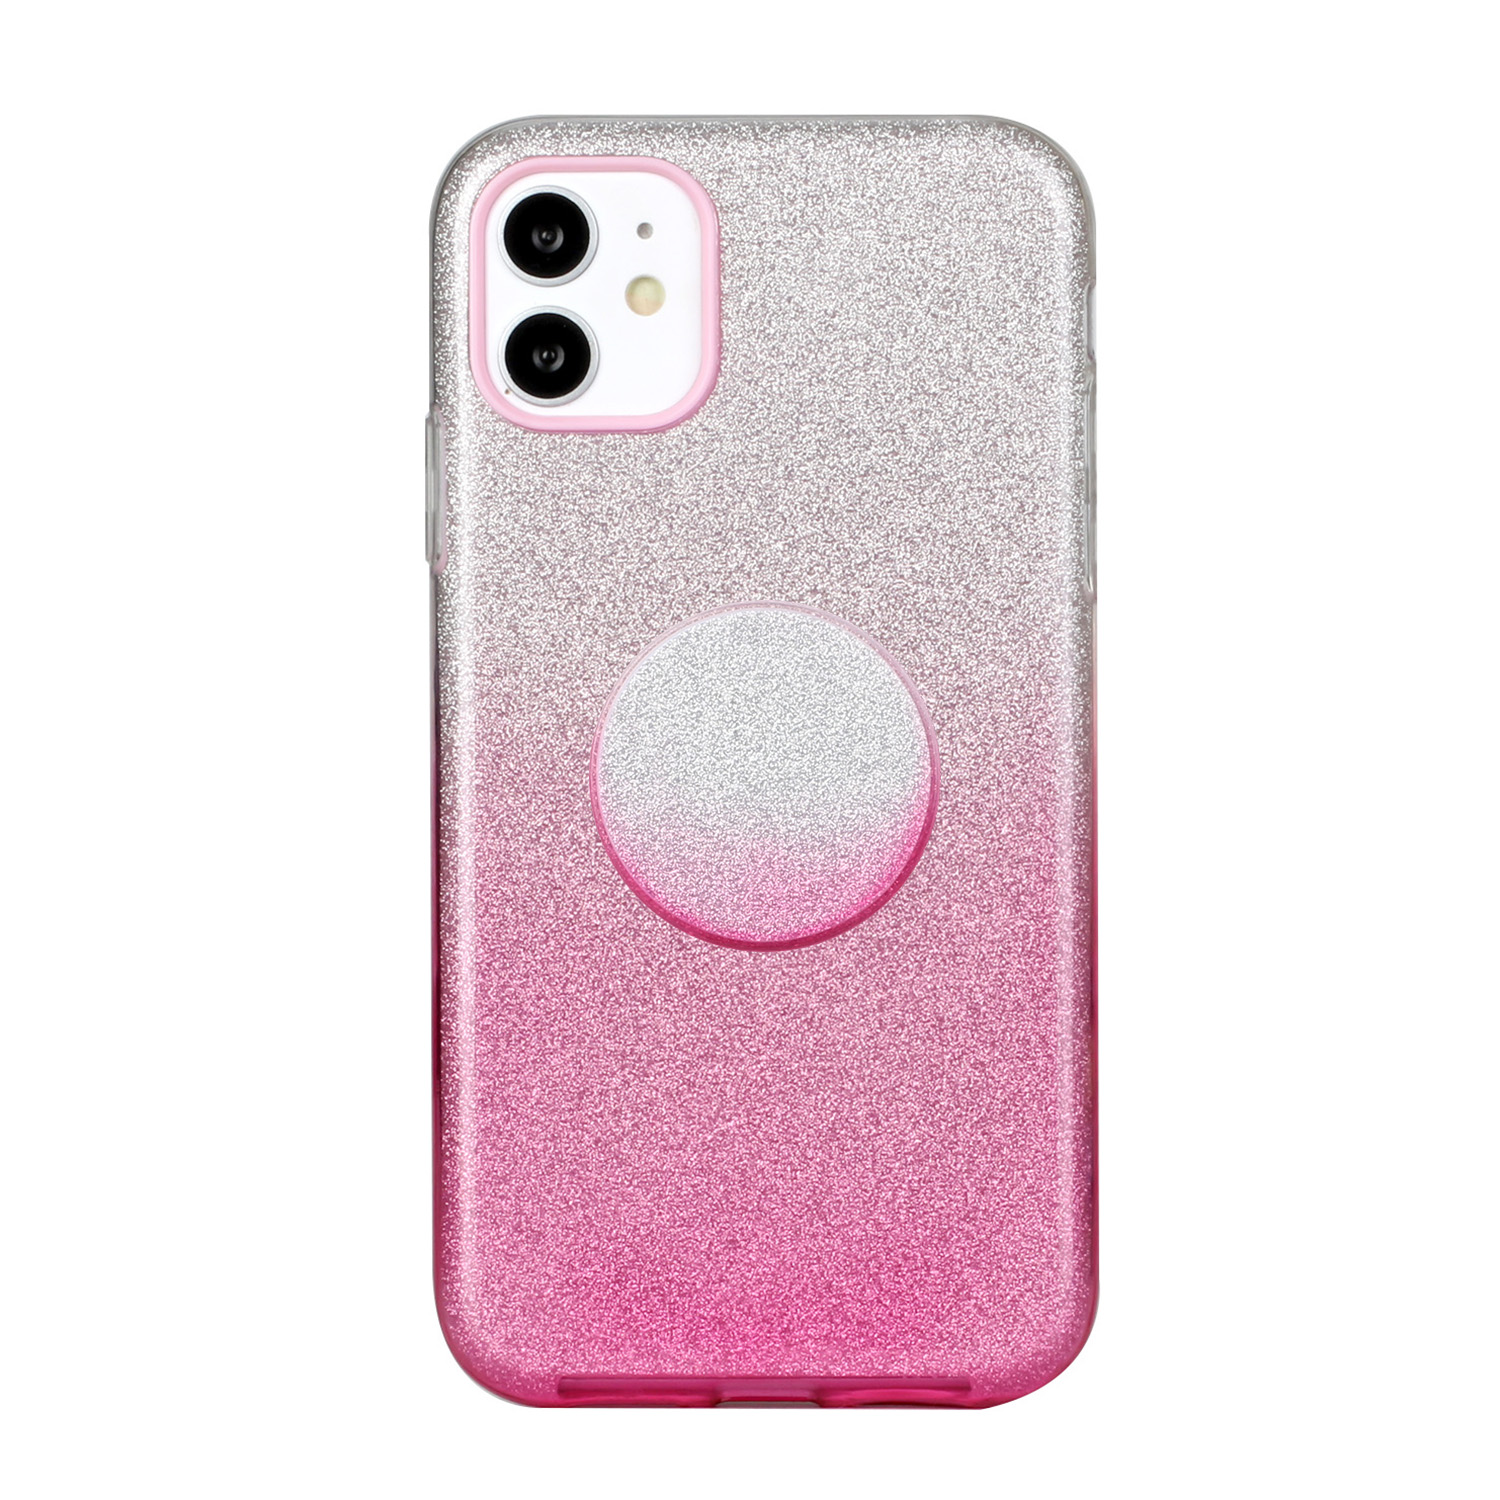 For iphone X/XS/XR/XS MAX/11/11 pro MAX Phone Case Gradient Color Glitter Powder Phone Cover with Airbag Bracket Pink